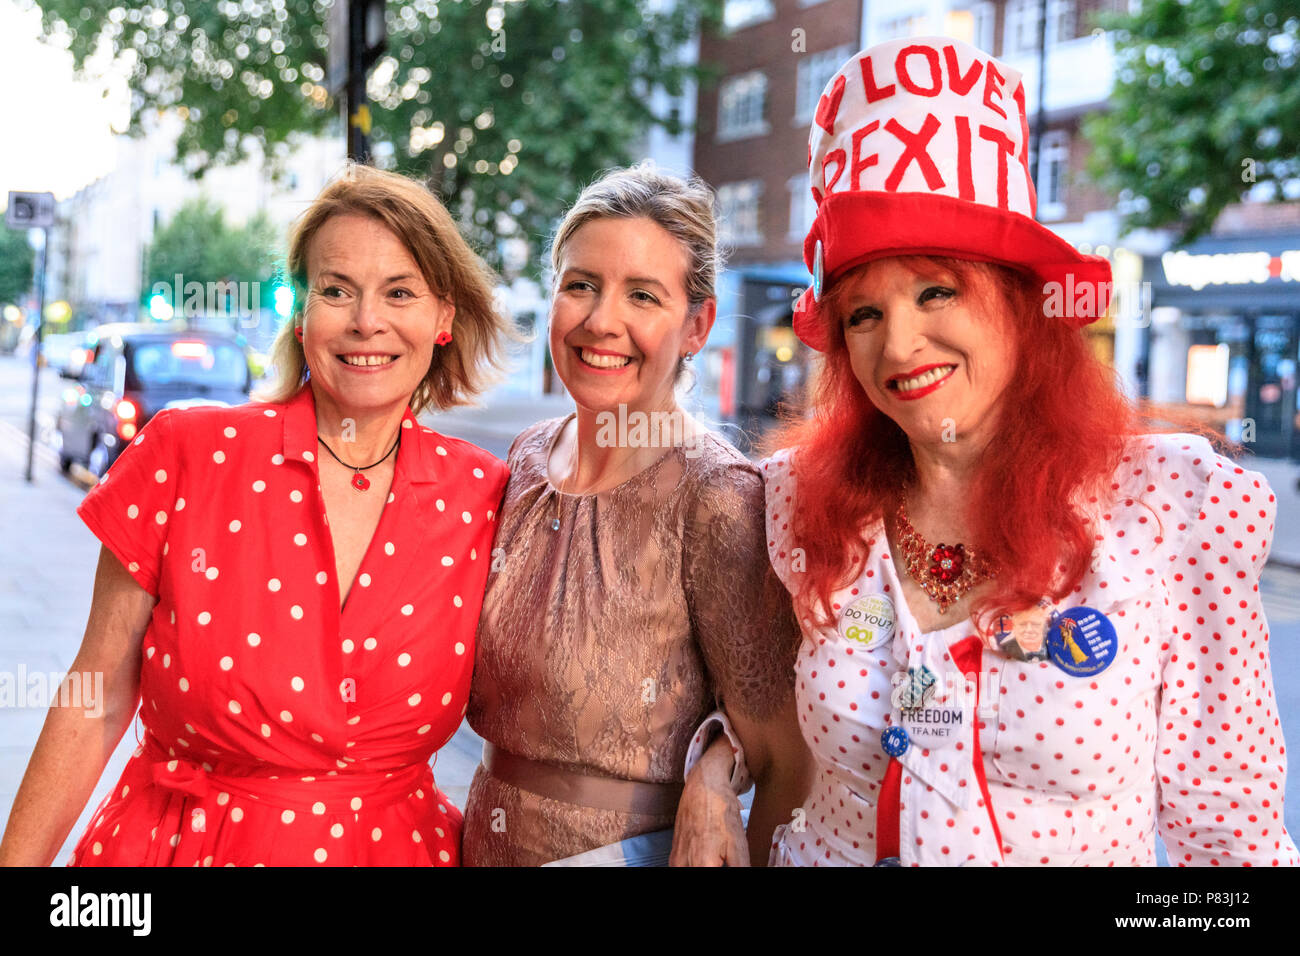 Earl's Court, London, 8th July 2018. MP and prominent Brexit supporter Andrea Jenkyns (middle, with other leave campaign supporters), Conservative Member of Parliament for Morley and Outwood attends, and sings at, an event titled ' The Big Brexit Party', organised by Artists for Brexit, in a venue near Earl's Court, London. Credit: Imageplotter News and Sports/Alamy Live News - Stock Image